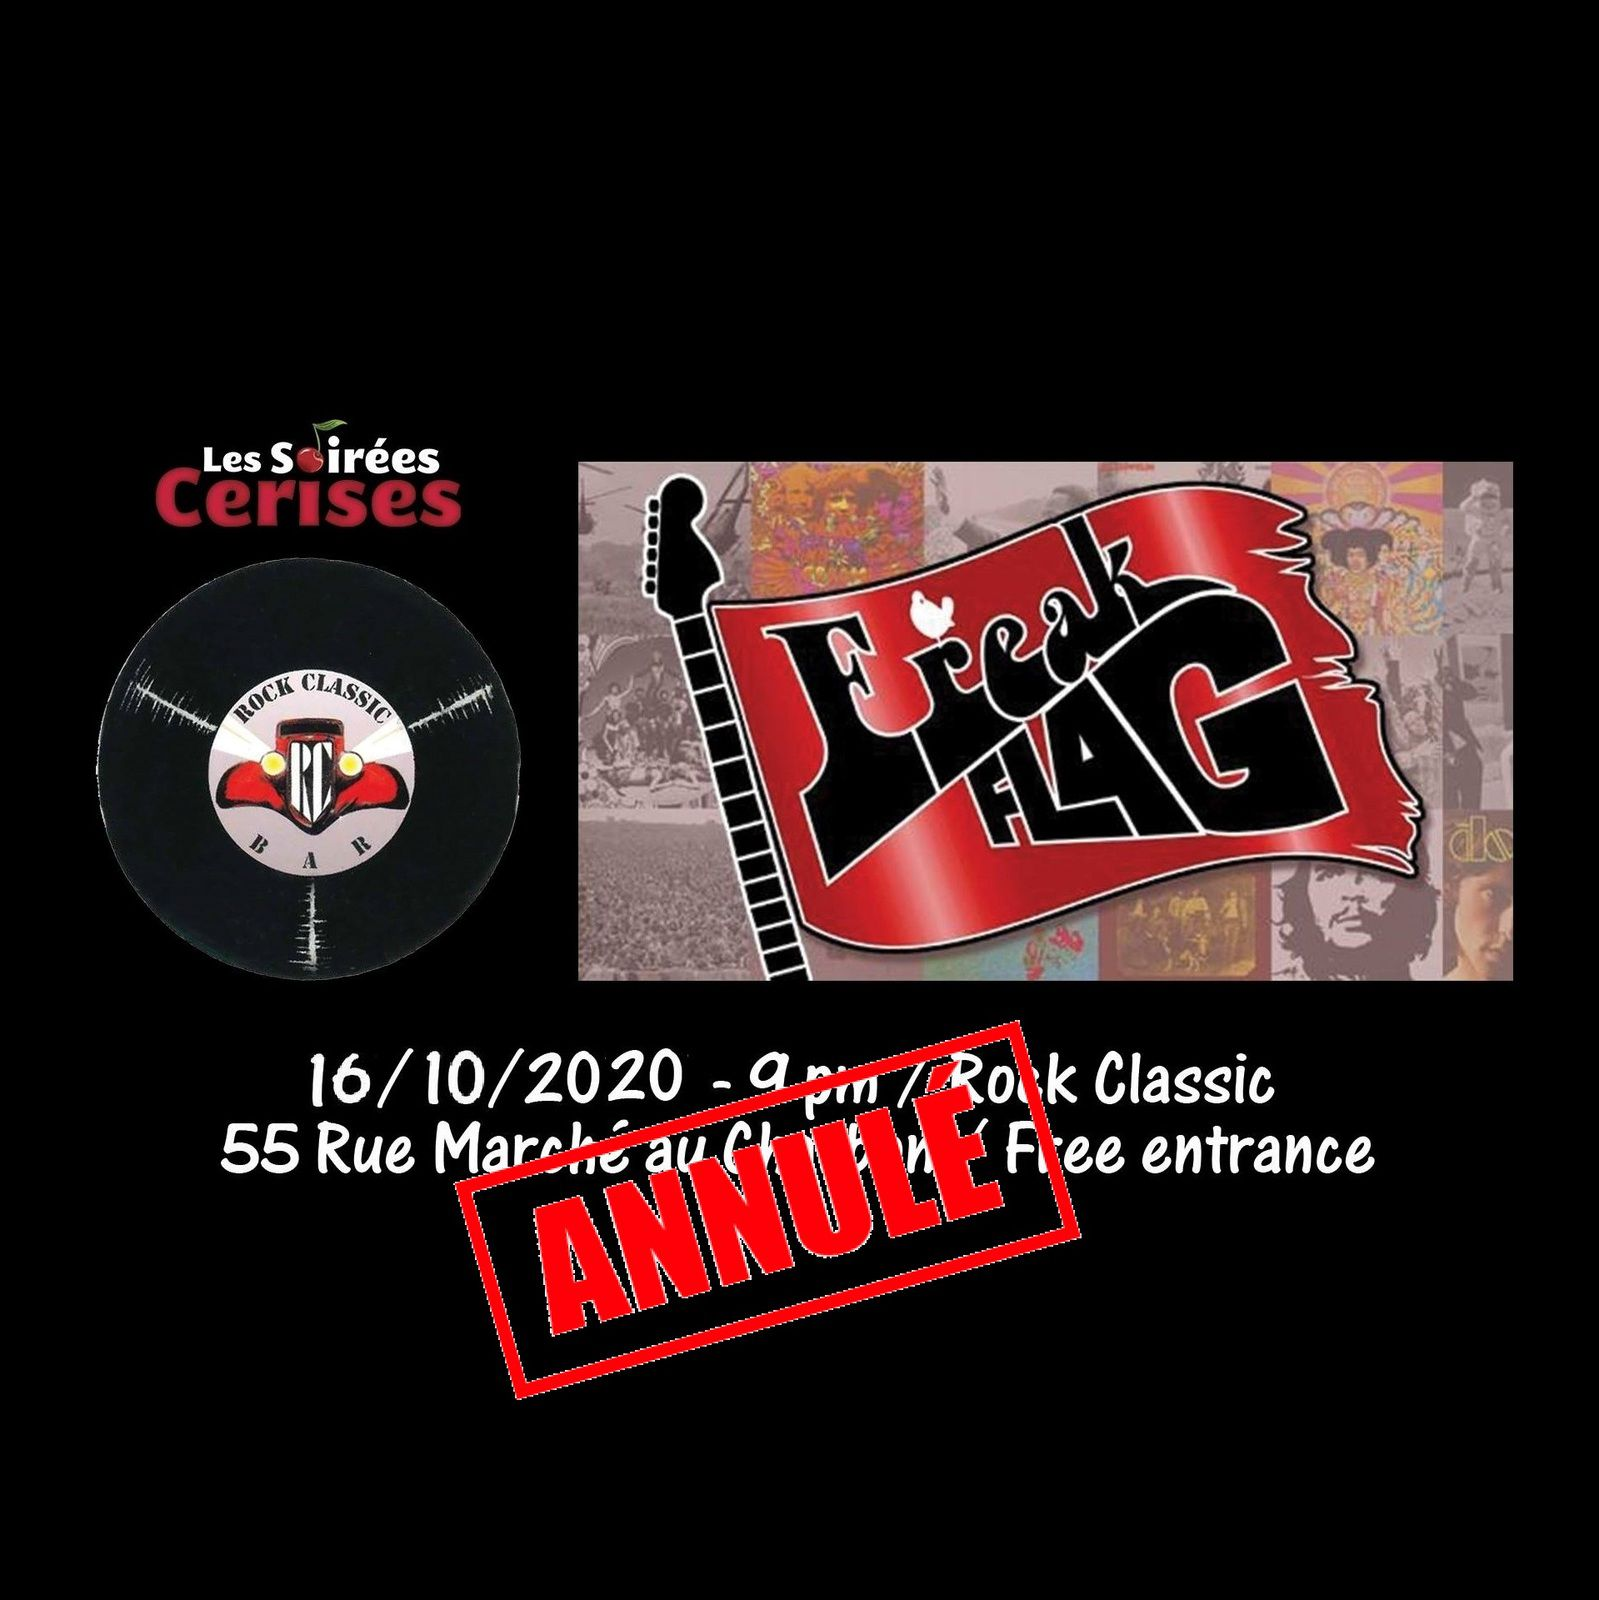 🎵 Freak Flag (UK) @ Rock Classic - 16/10/2020 - annulé